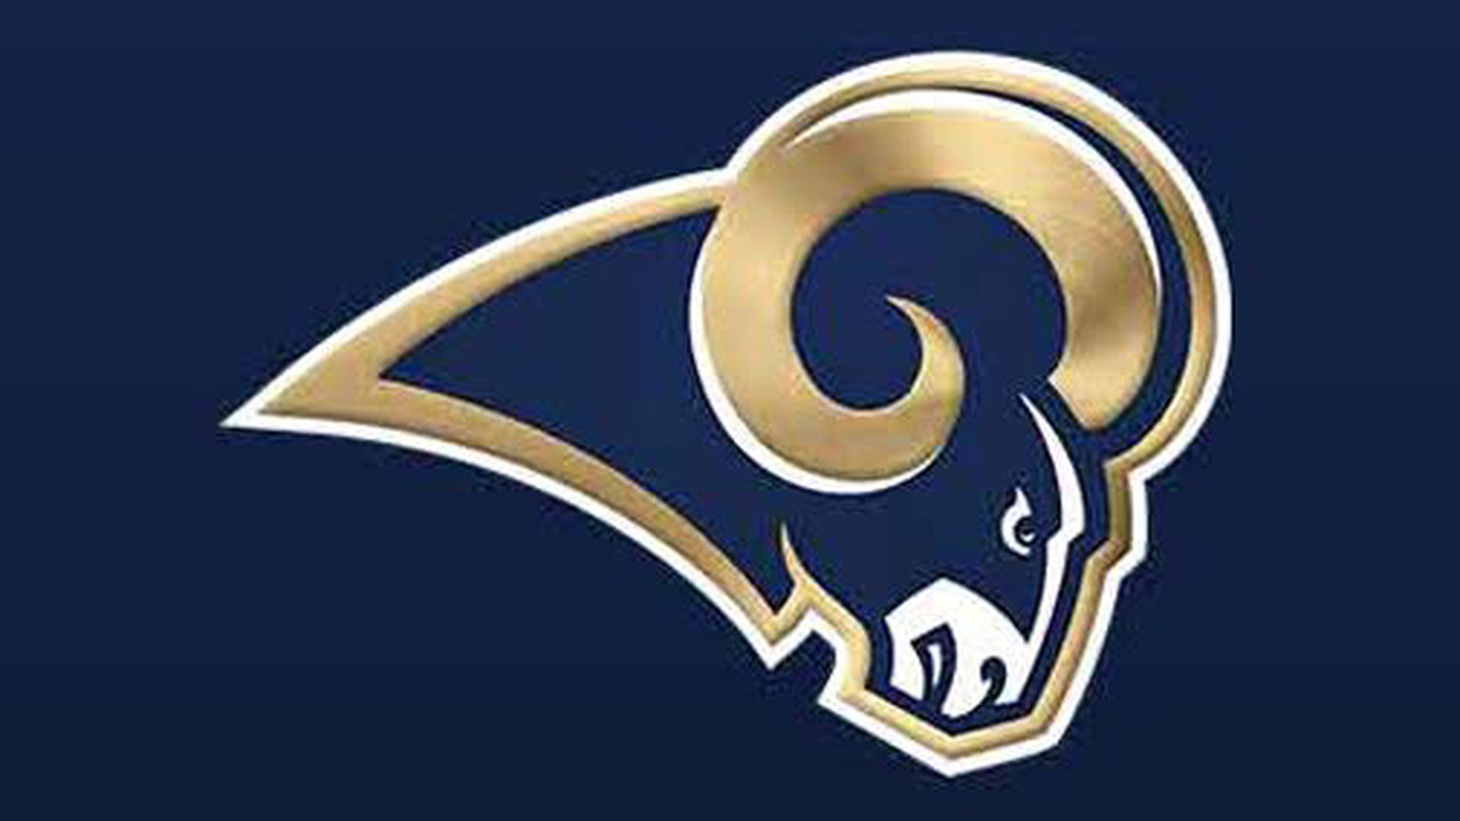 After two decades without a pro football team in LA the Rams are coming back. Will Angelenos embrace them? And will a $2 billion stadium be good for Inglewood? And POWERBALL, $1.5 billion...got a ticket?